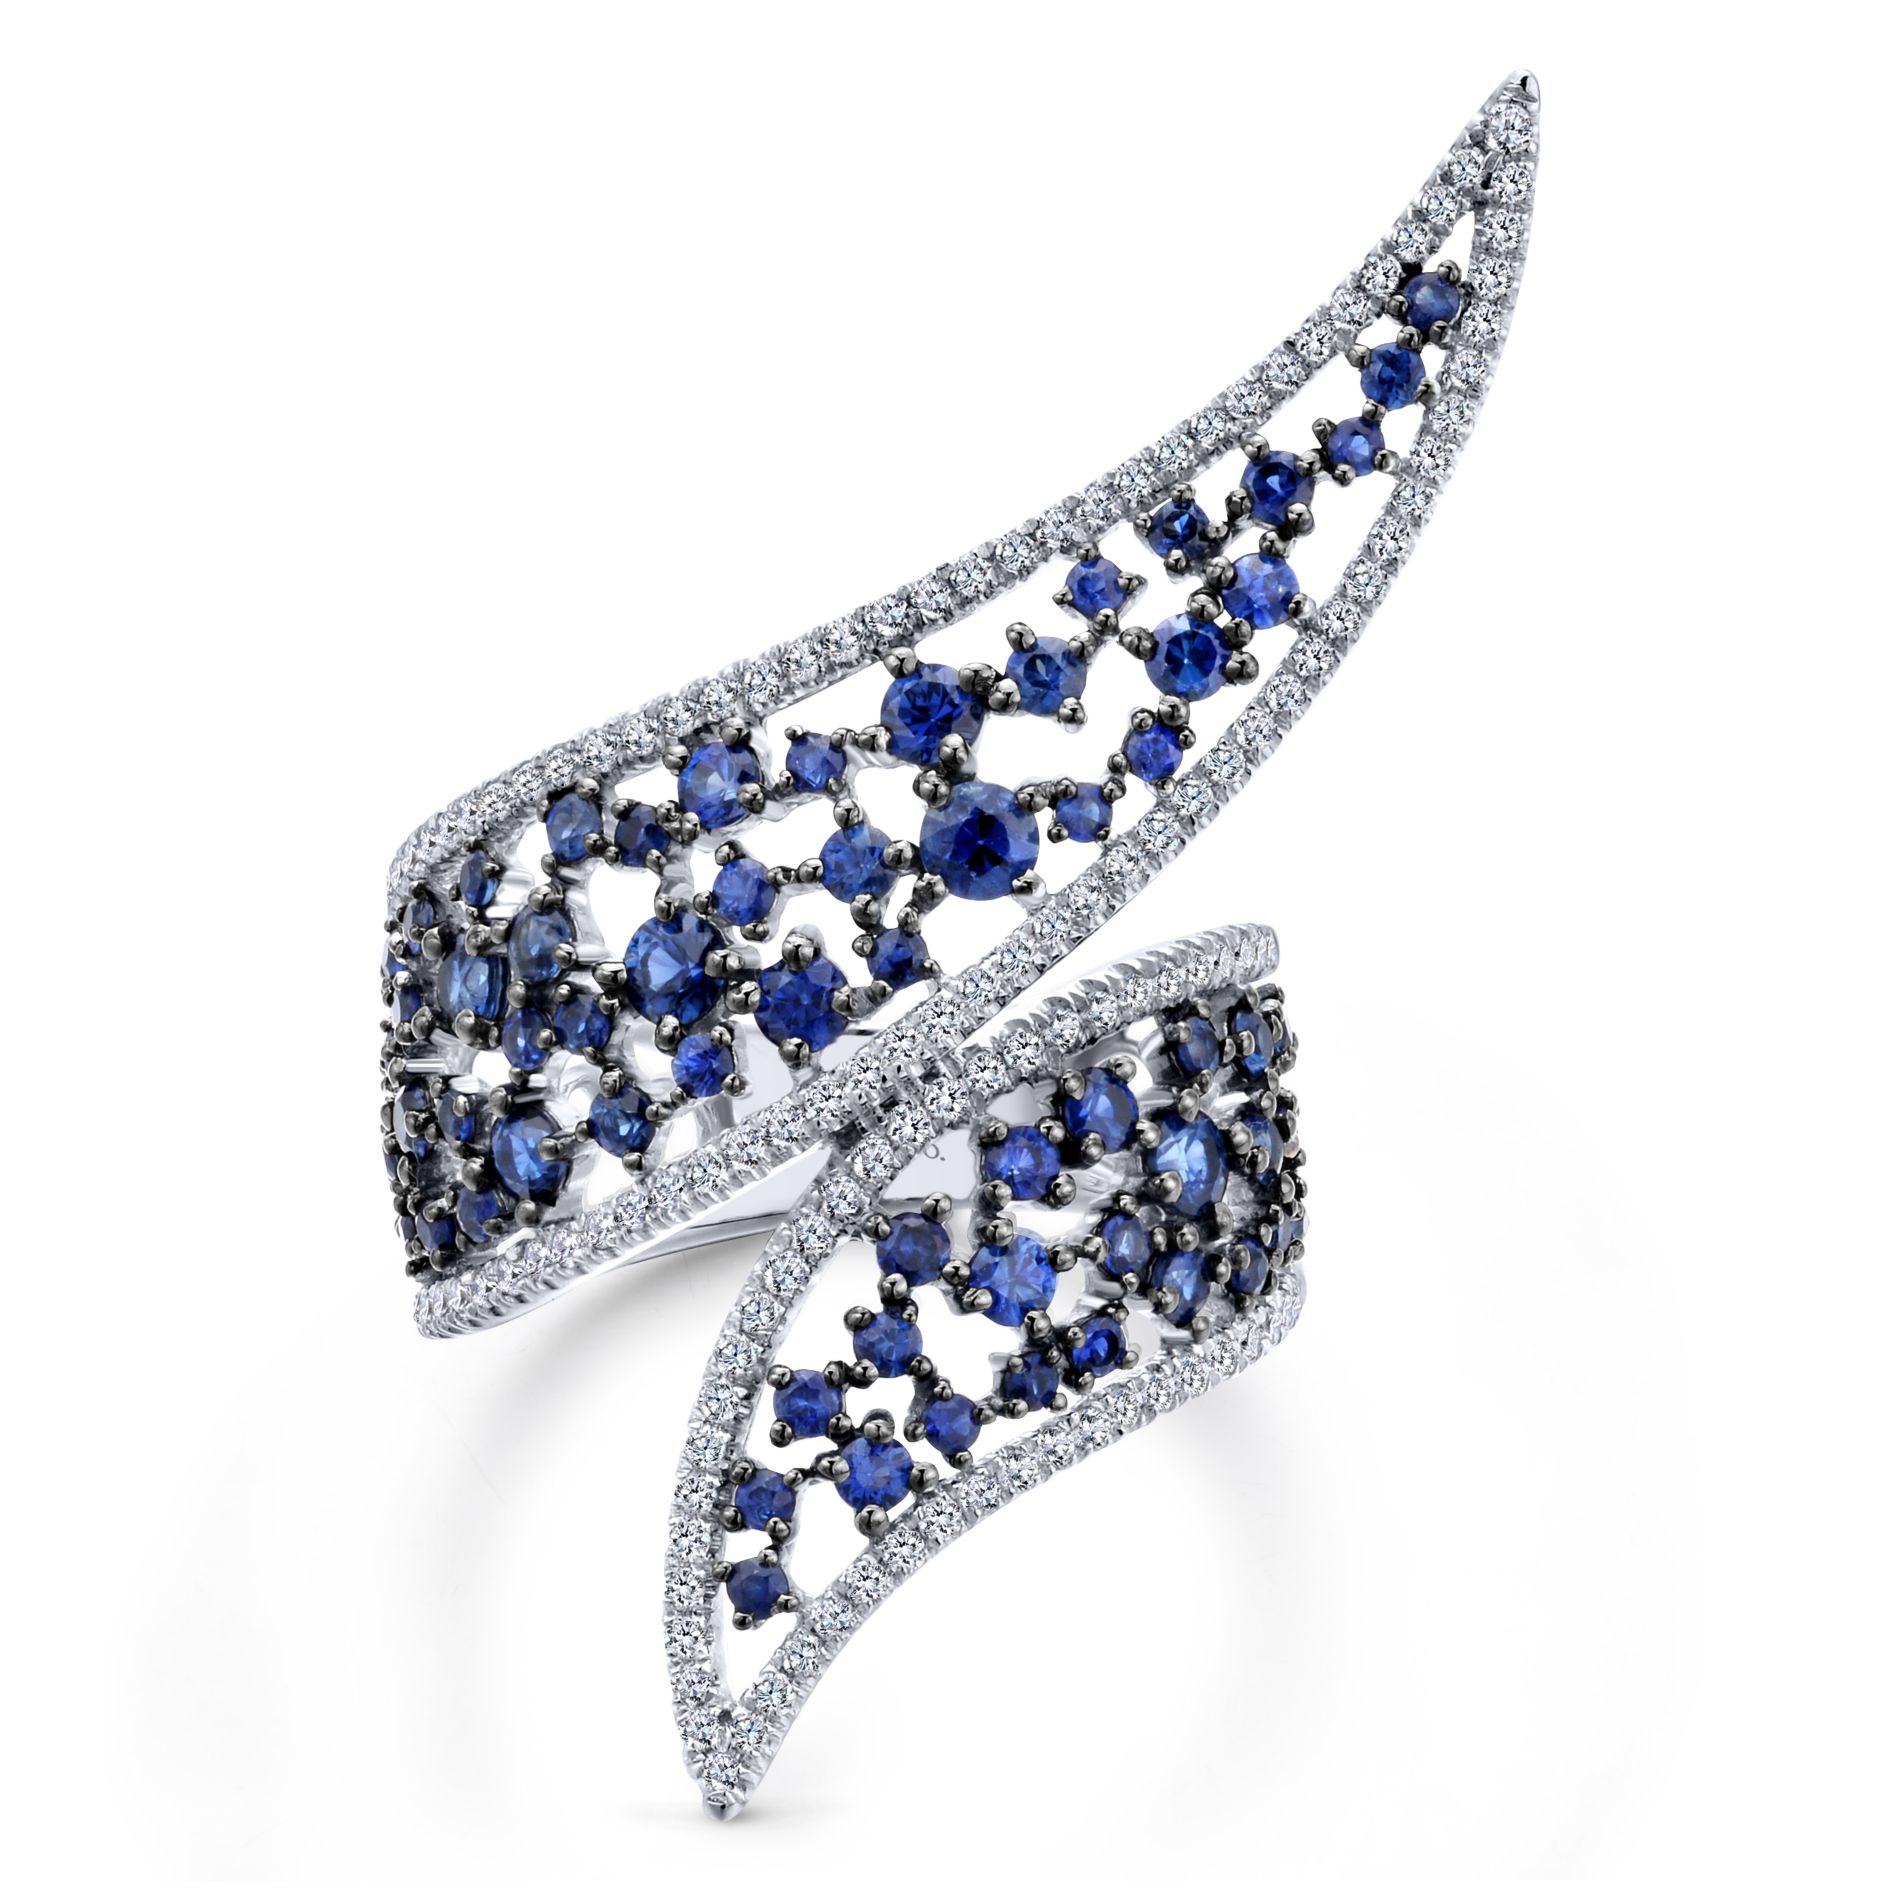 DIAMOND AND SAPPHIRE LADIES RING by Gabriel & Co